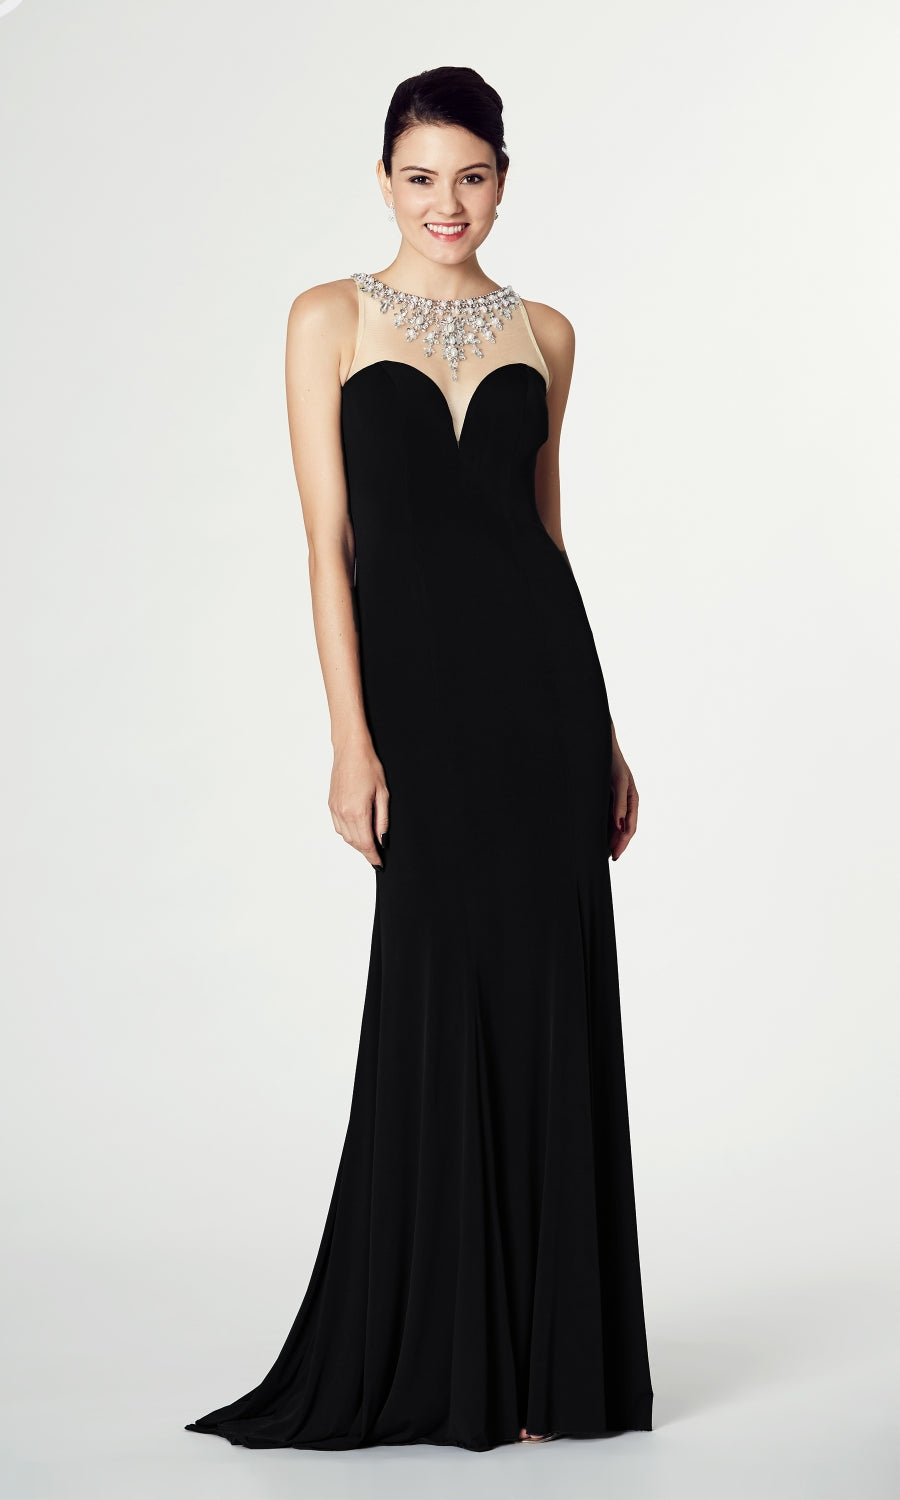 Naomi* Black Tiffanys Sweetheart Neckline Evening Dress - Fab Frocks